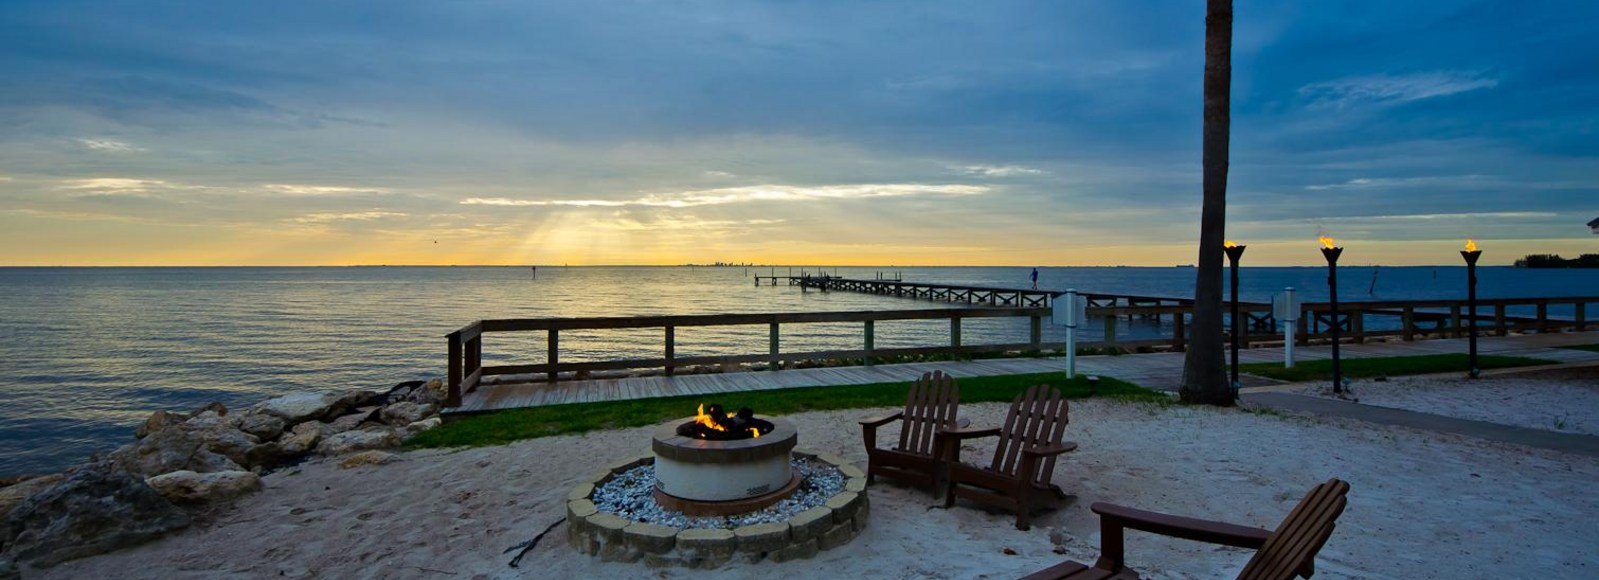 Little Harbour Newest New Home Community - Beautiful Brand New Homes Ruskin Fl